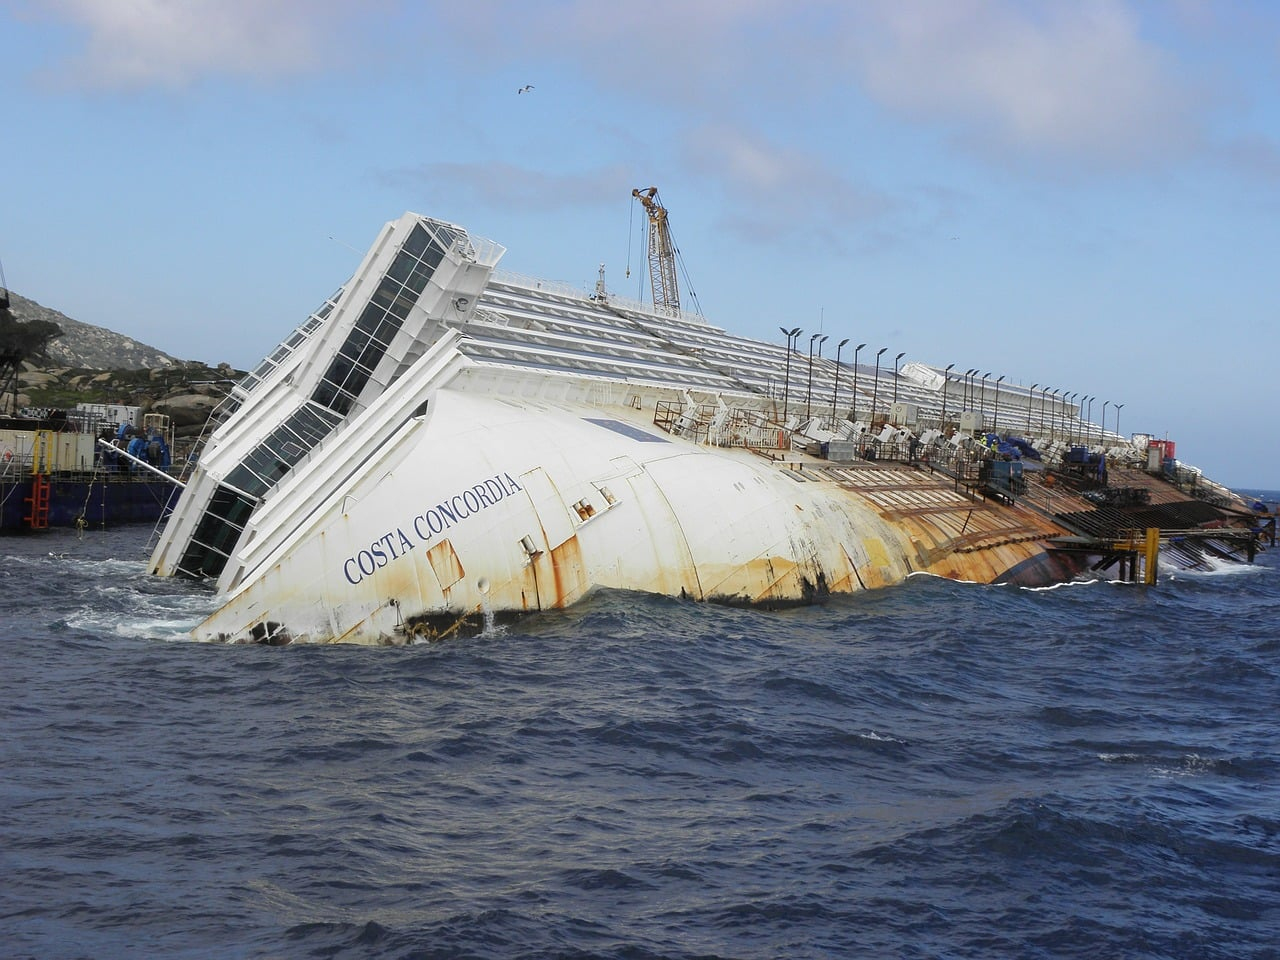 Costa Concordia syndrome